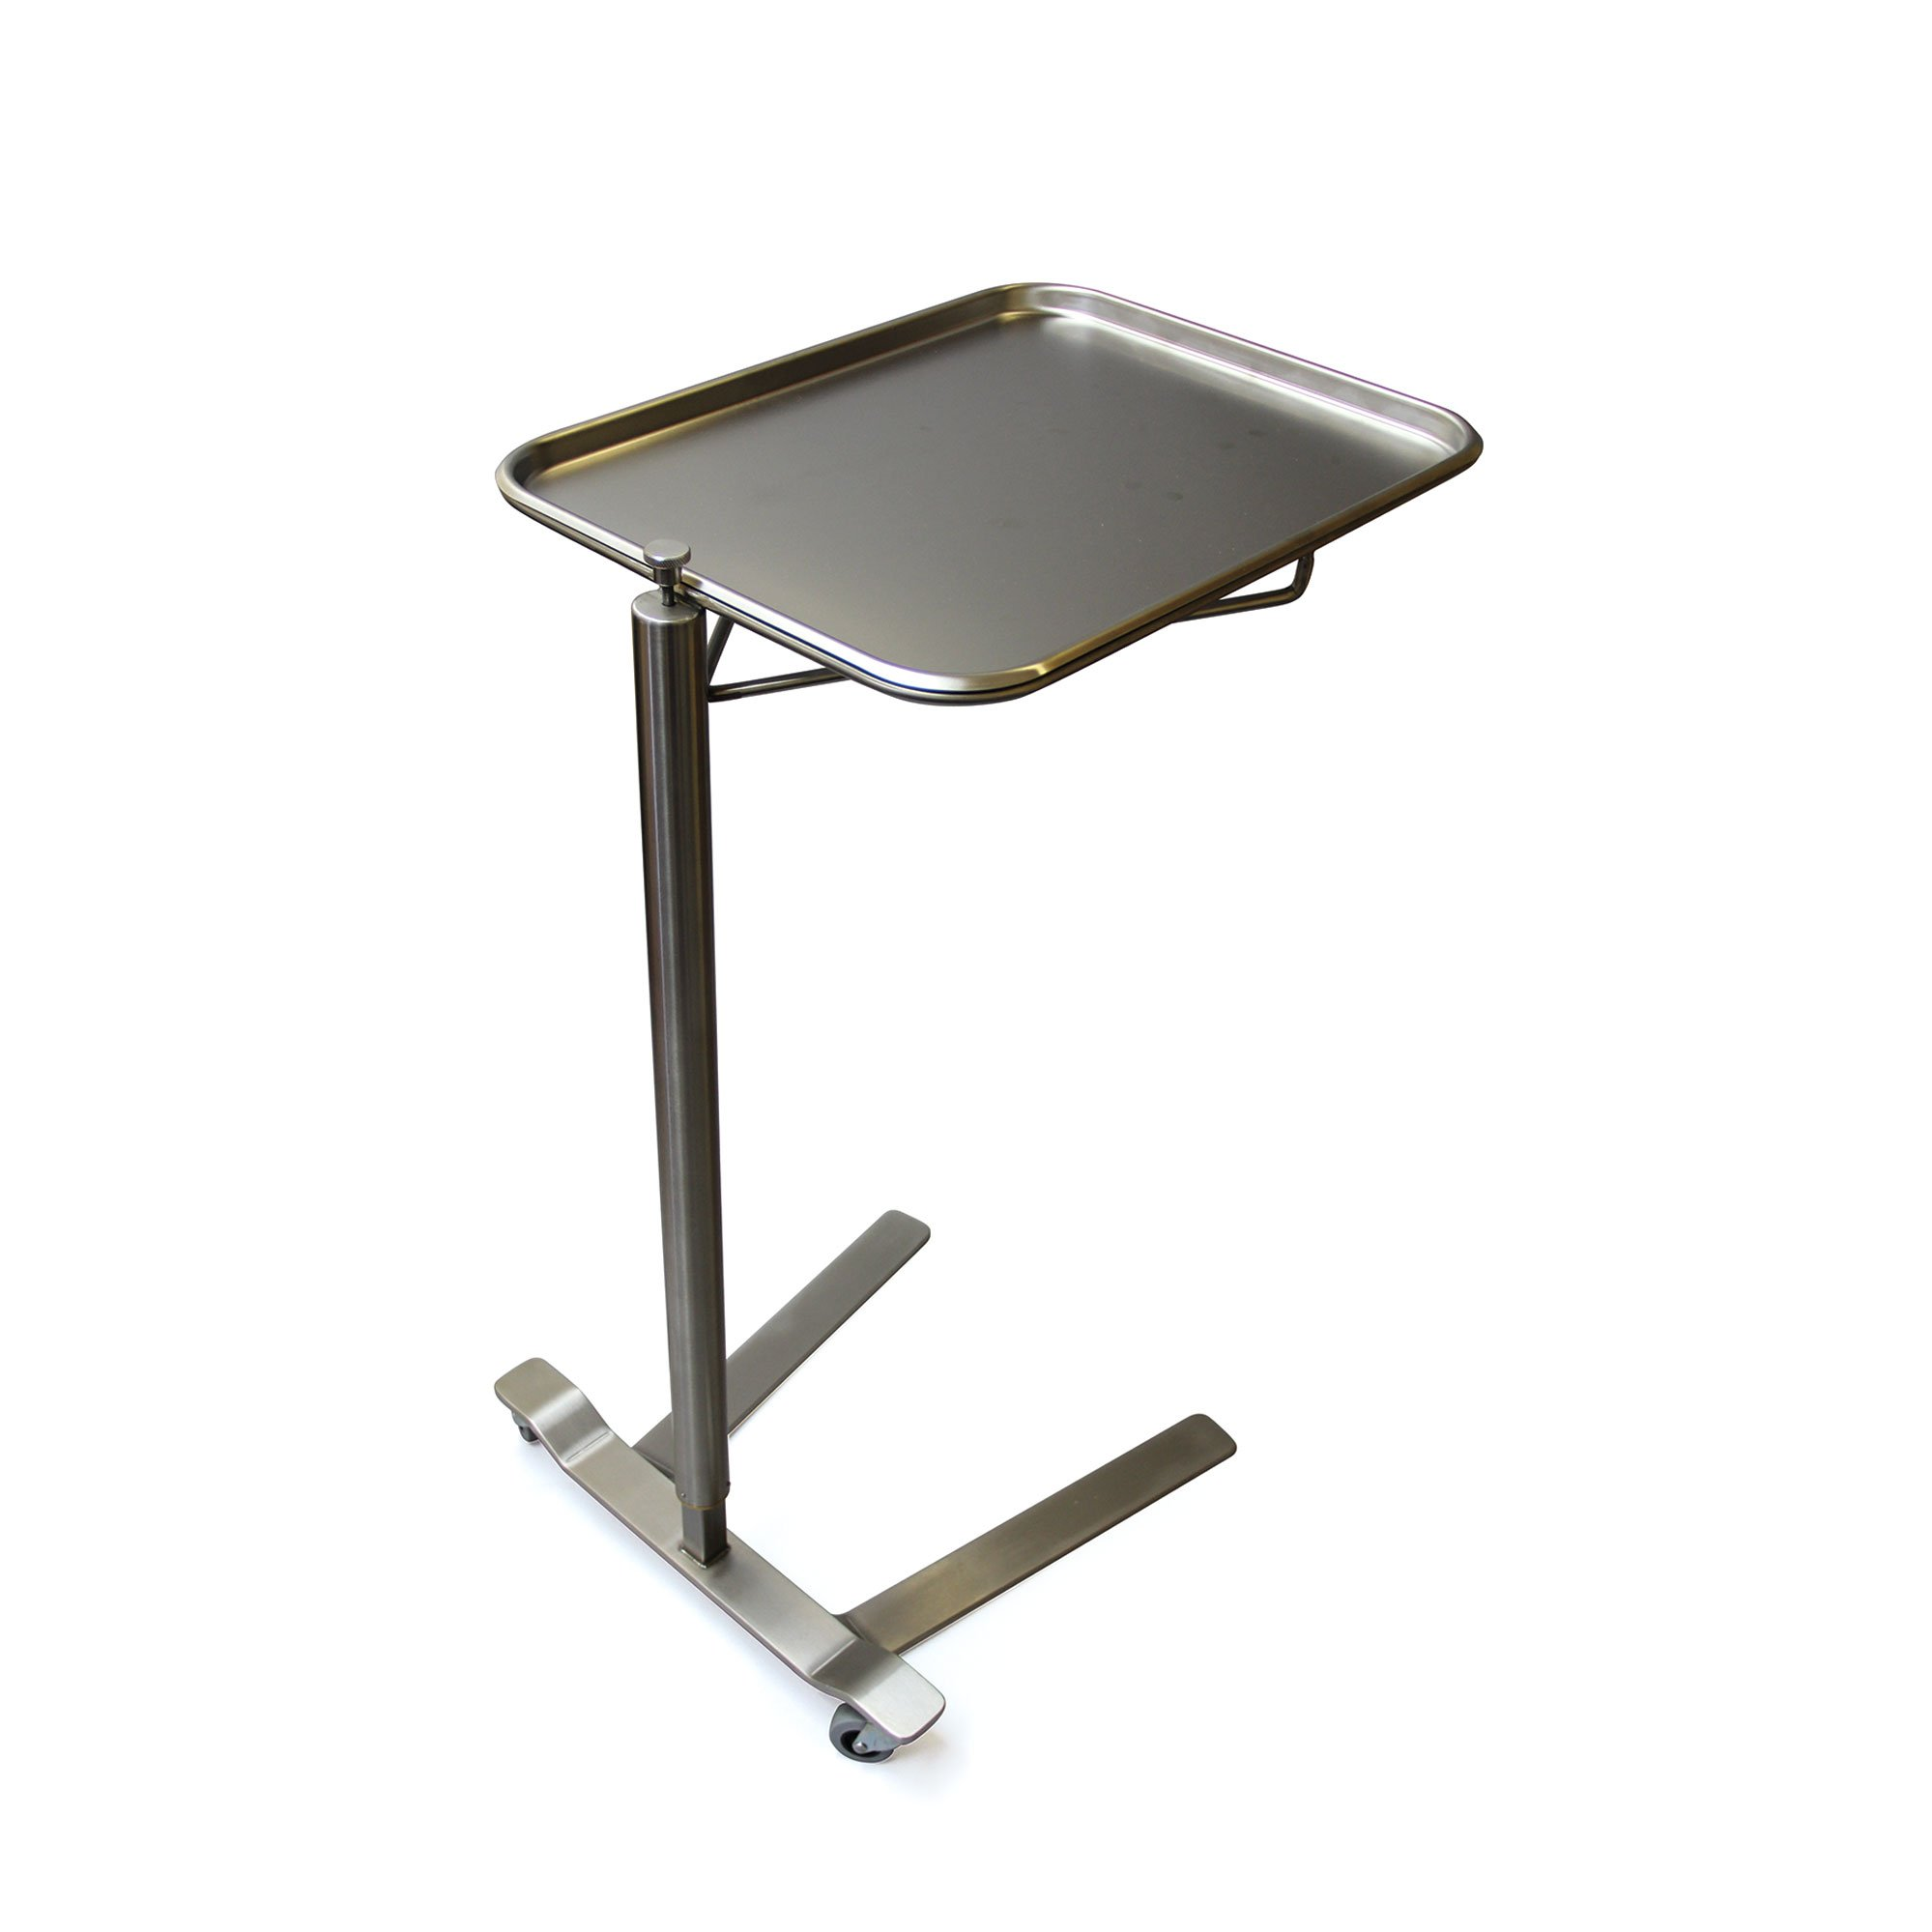 Stainless Steel Thumb Control Mayo Stand 16.25'' W x 21.25'' L Tray Size